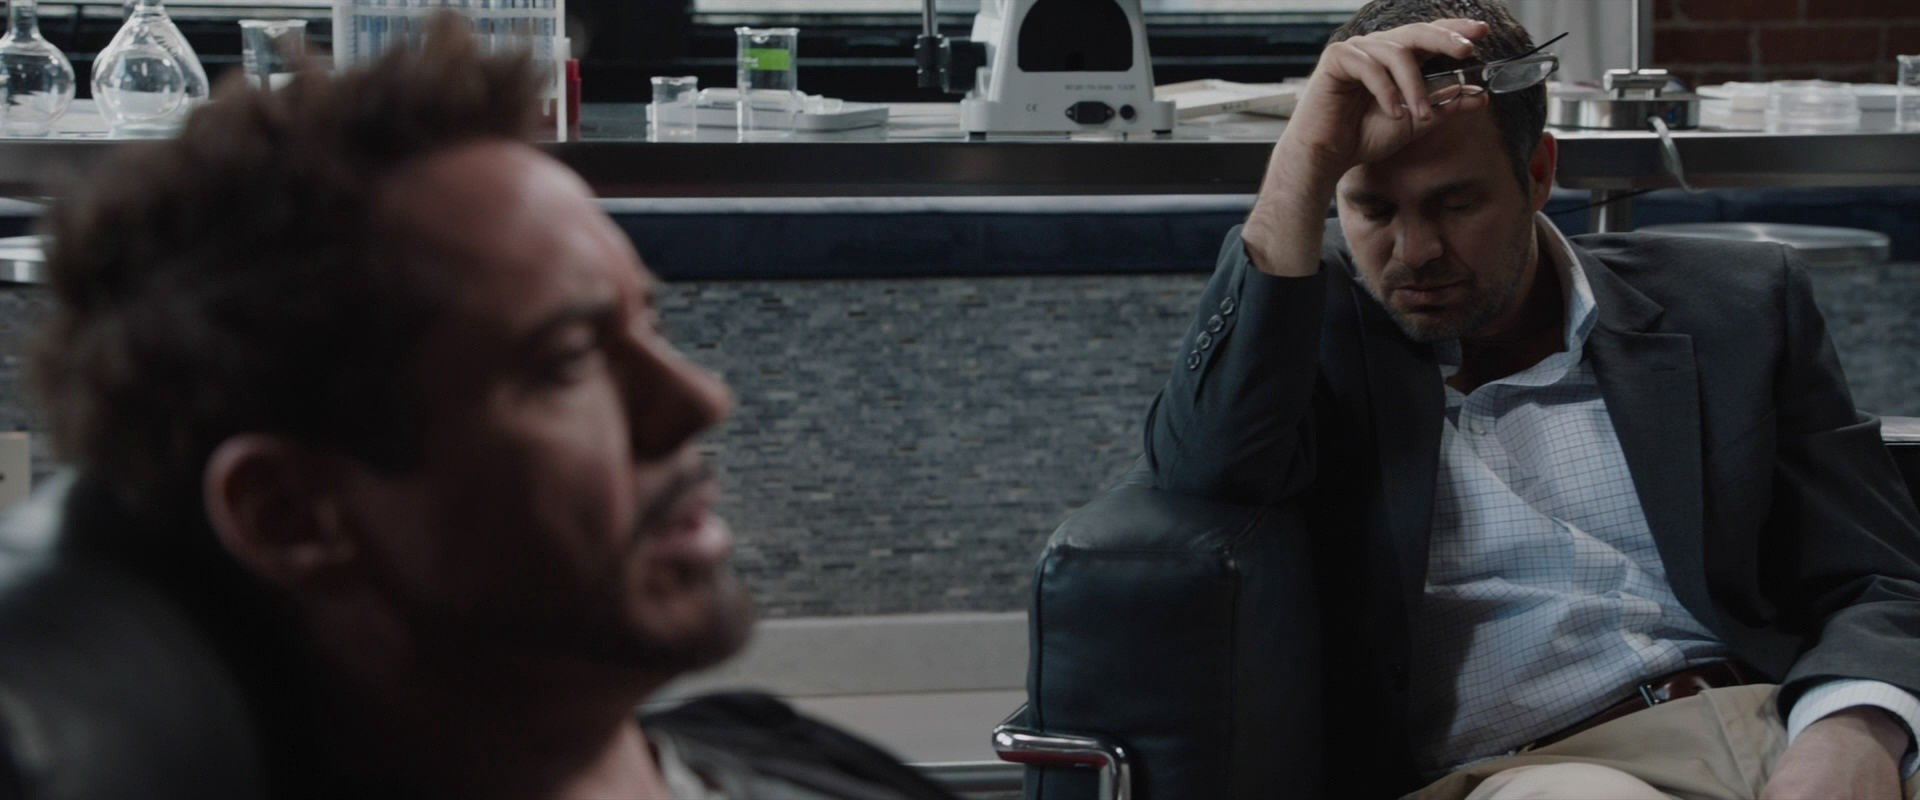 Tony Stark boring Bruce Banner to death in Iron Man 3's post-credits scene